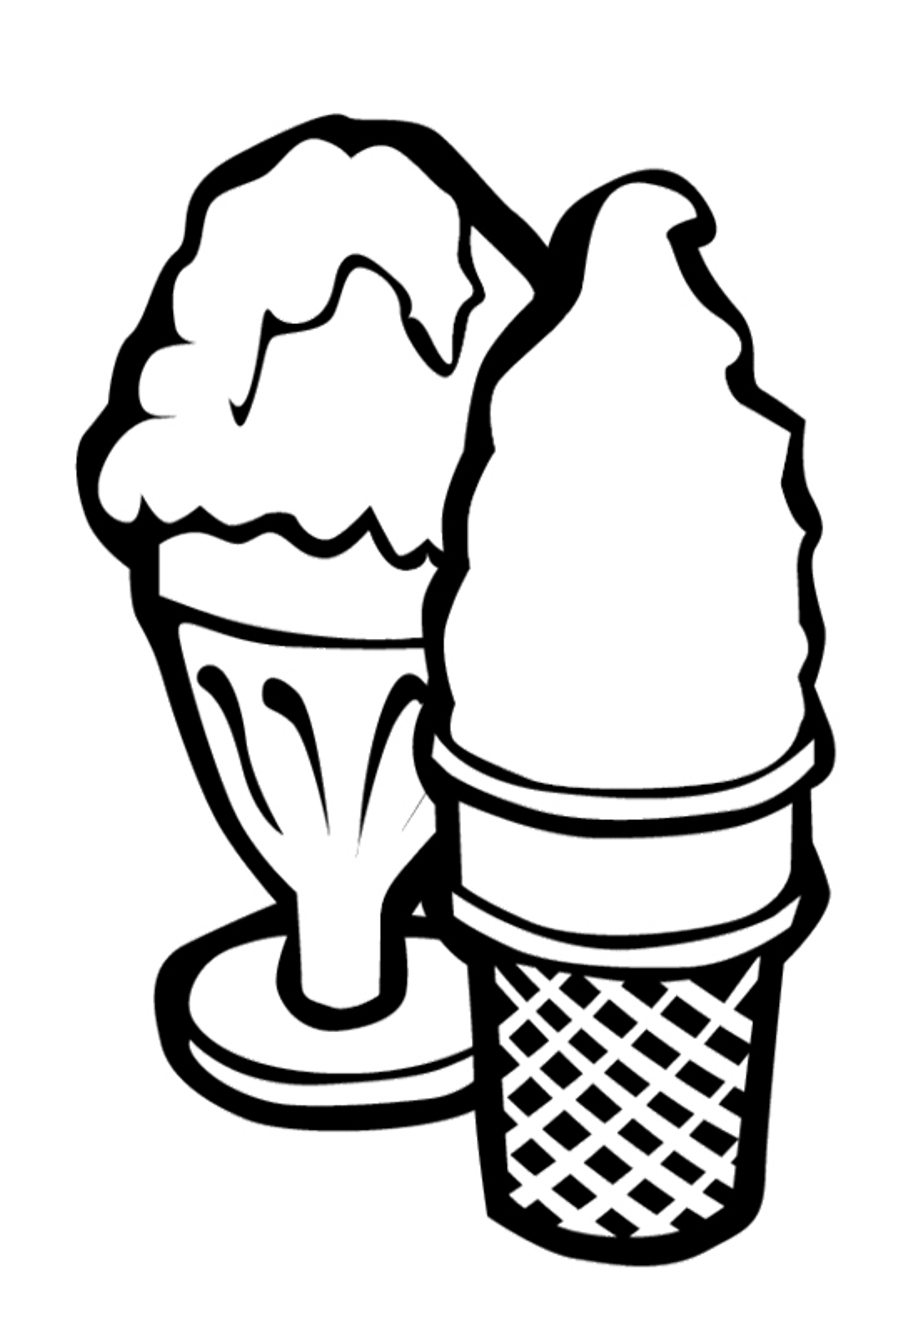 coloring ice cream pages coloring pages for kids ice cream coloring cream pages ice